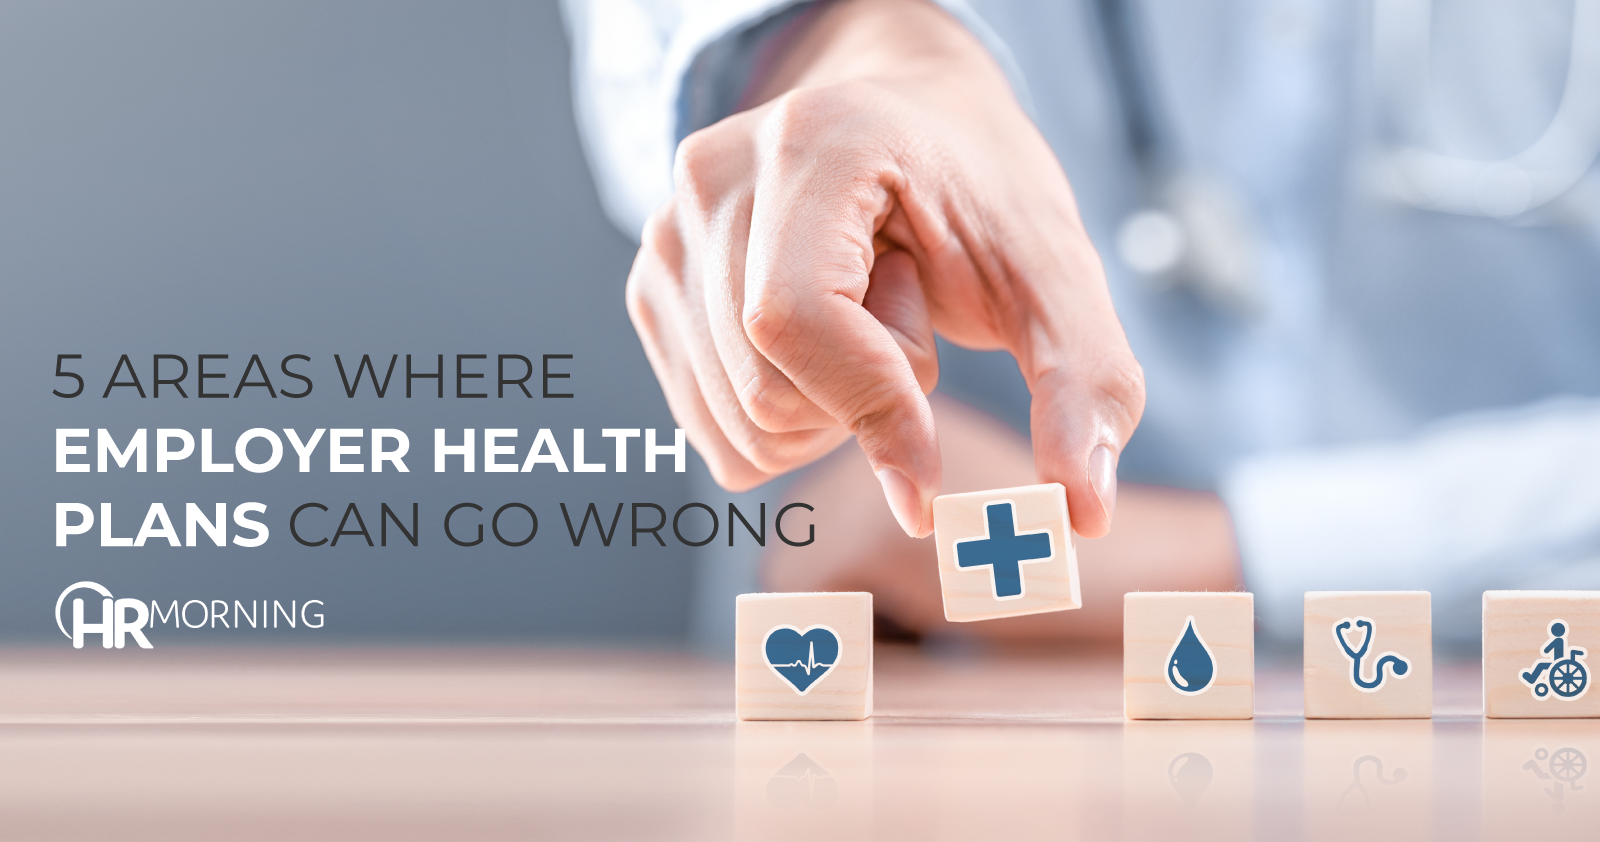 5 areas where employer health plans can go wrong